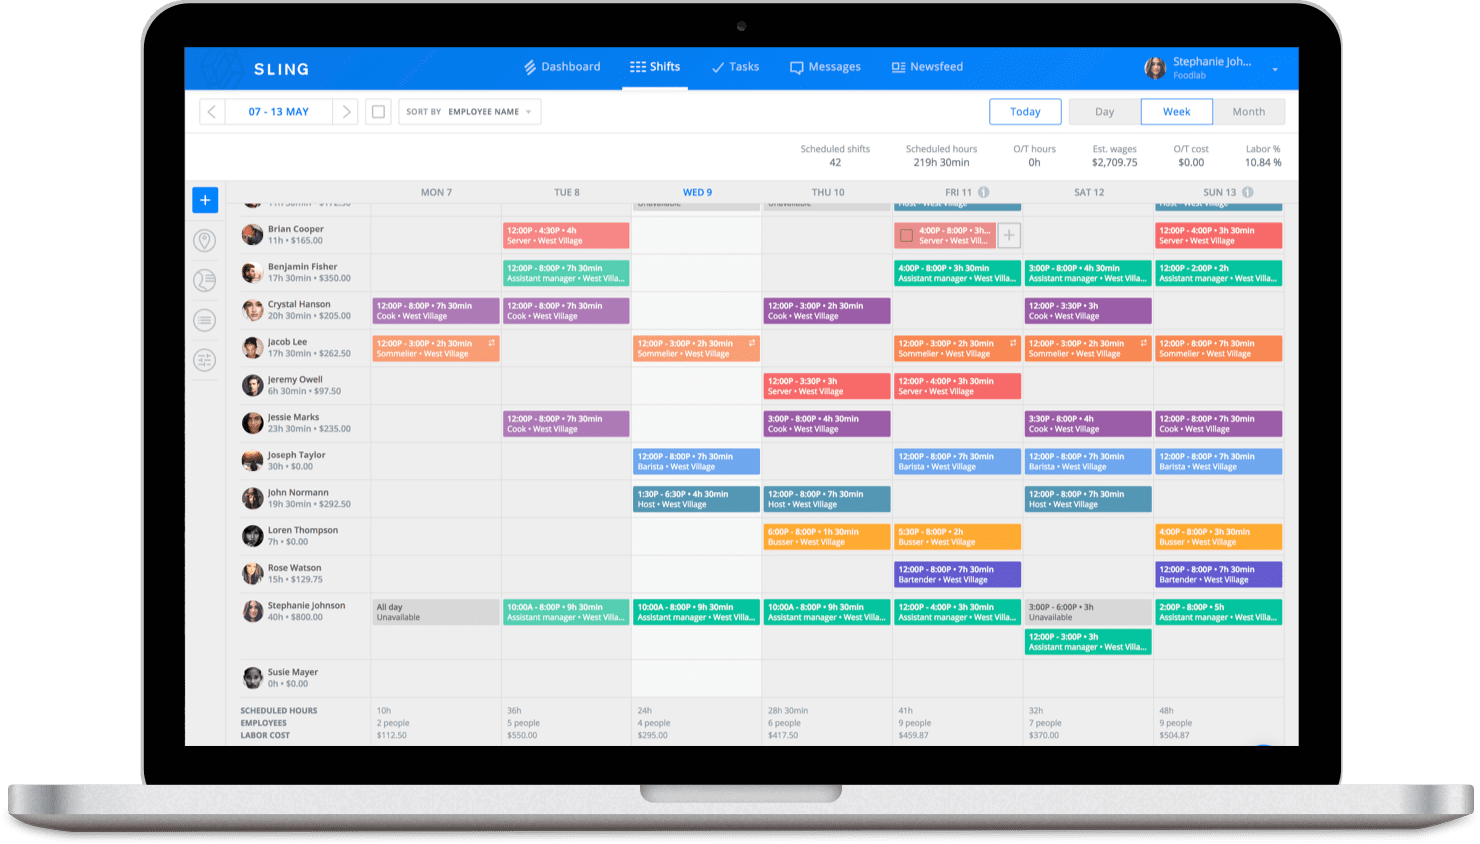 Sling's scheduling feature for proper leave management